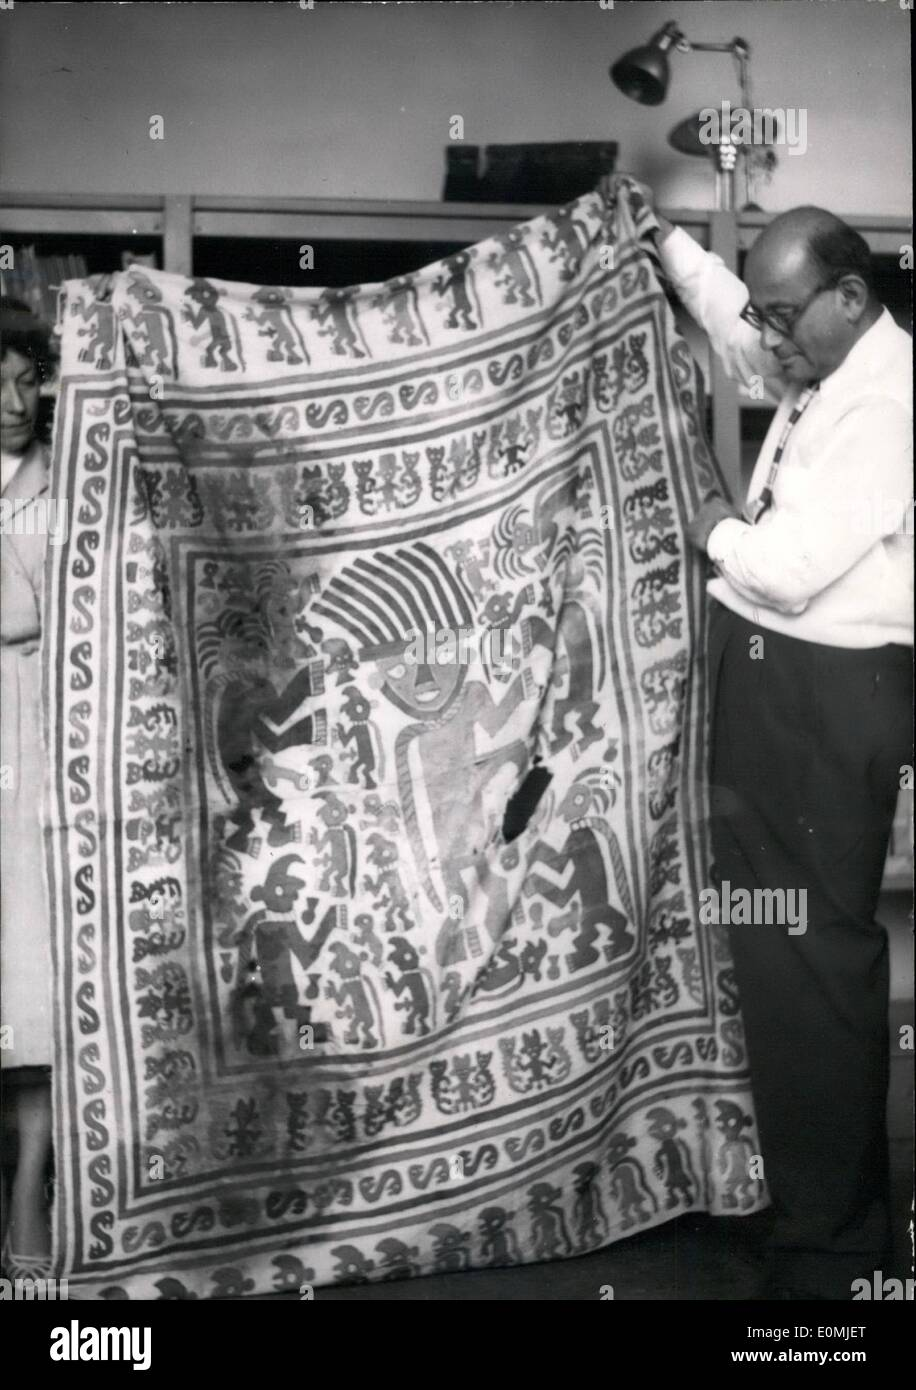 Sep. 09, 1955 - 1,000 year old Peruvian Shroud on view in Paris Museum: Mr. John Wise, American art collector, displaying his donation to the Paris Musee De L'Homme, an ancient shroud dating back to over 1,000 years discovered in a tomb in Peru - Stock Image